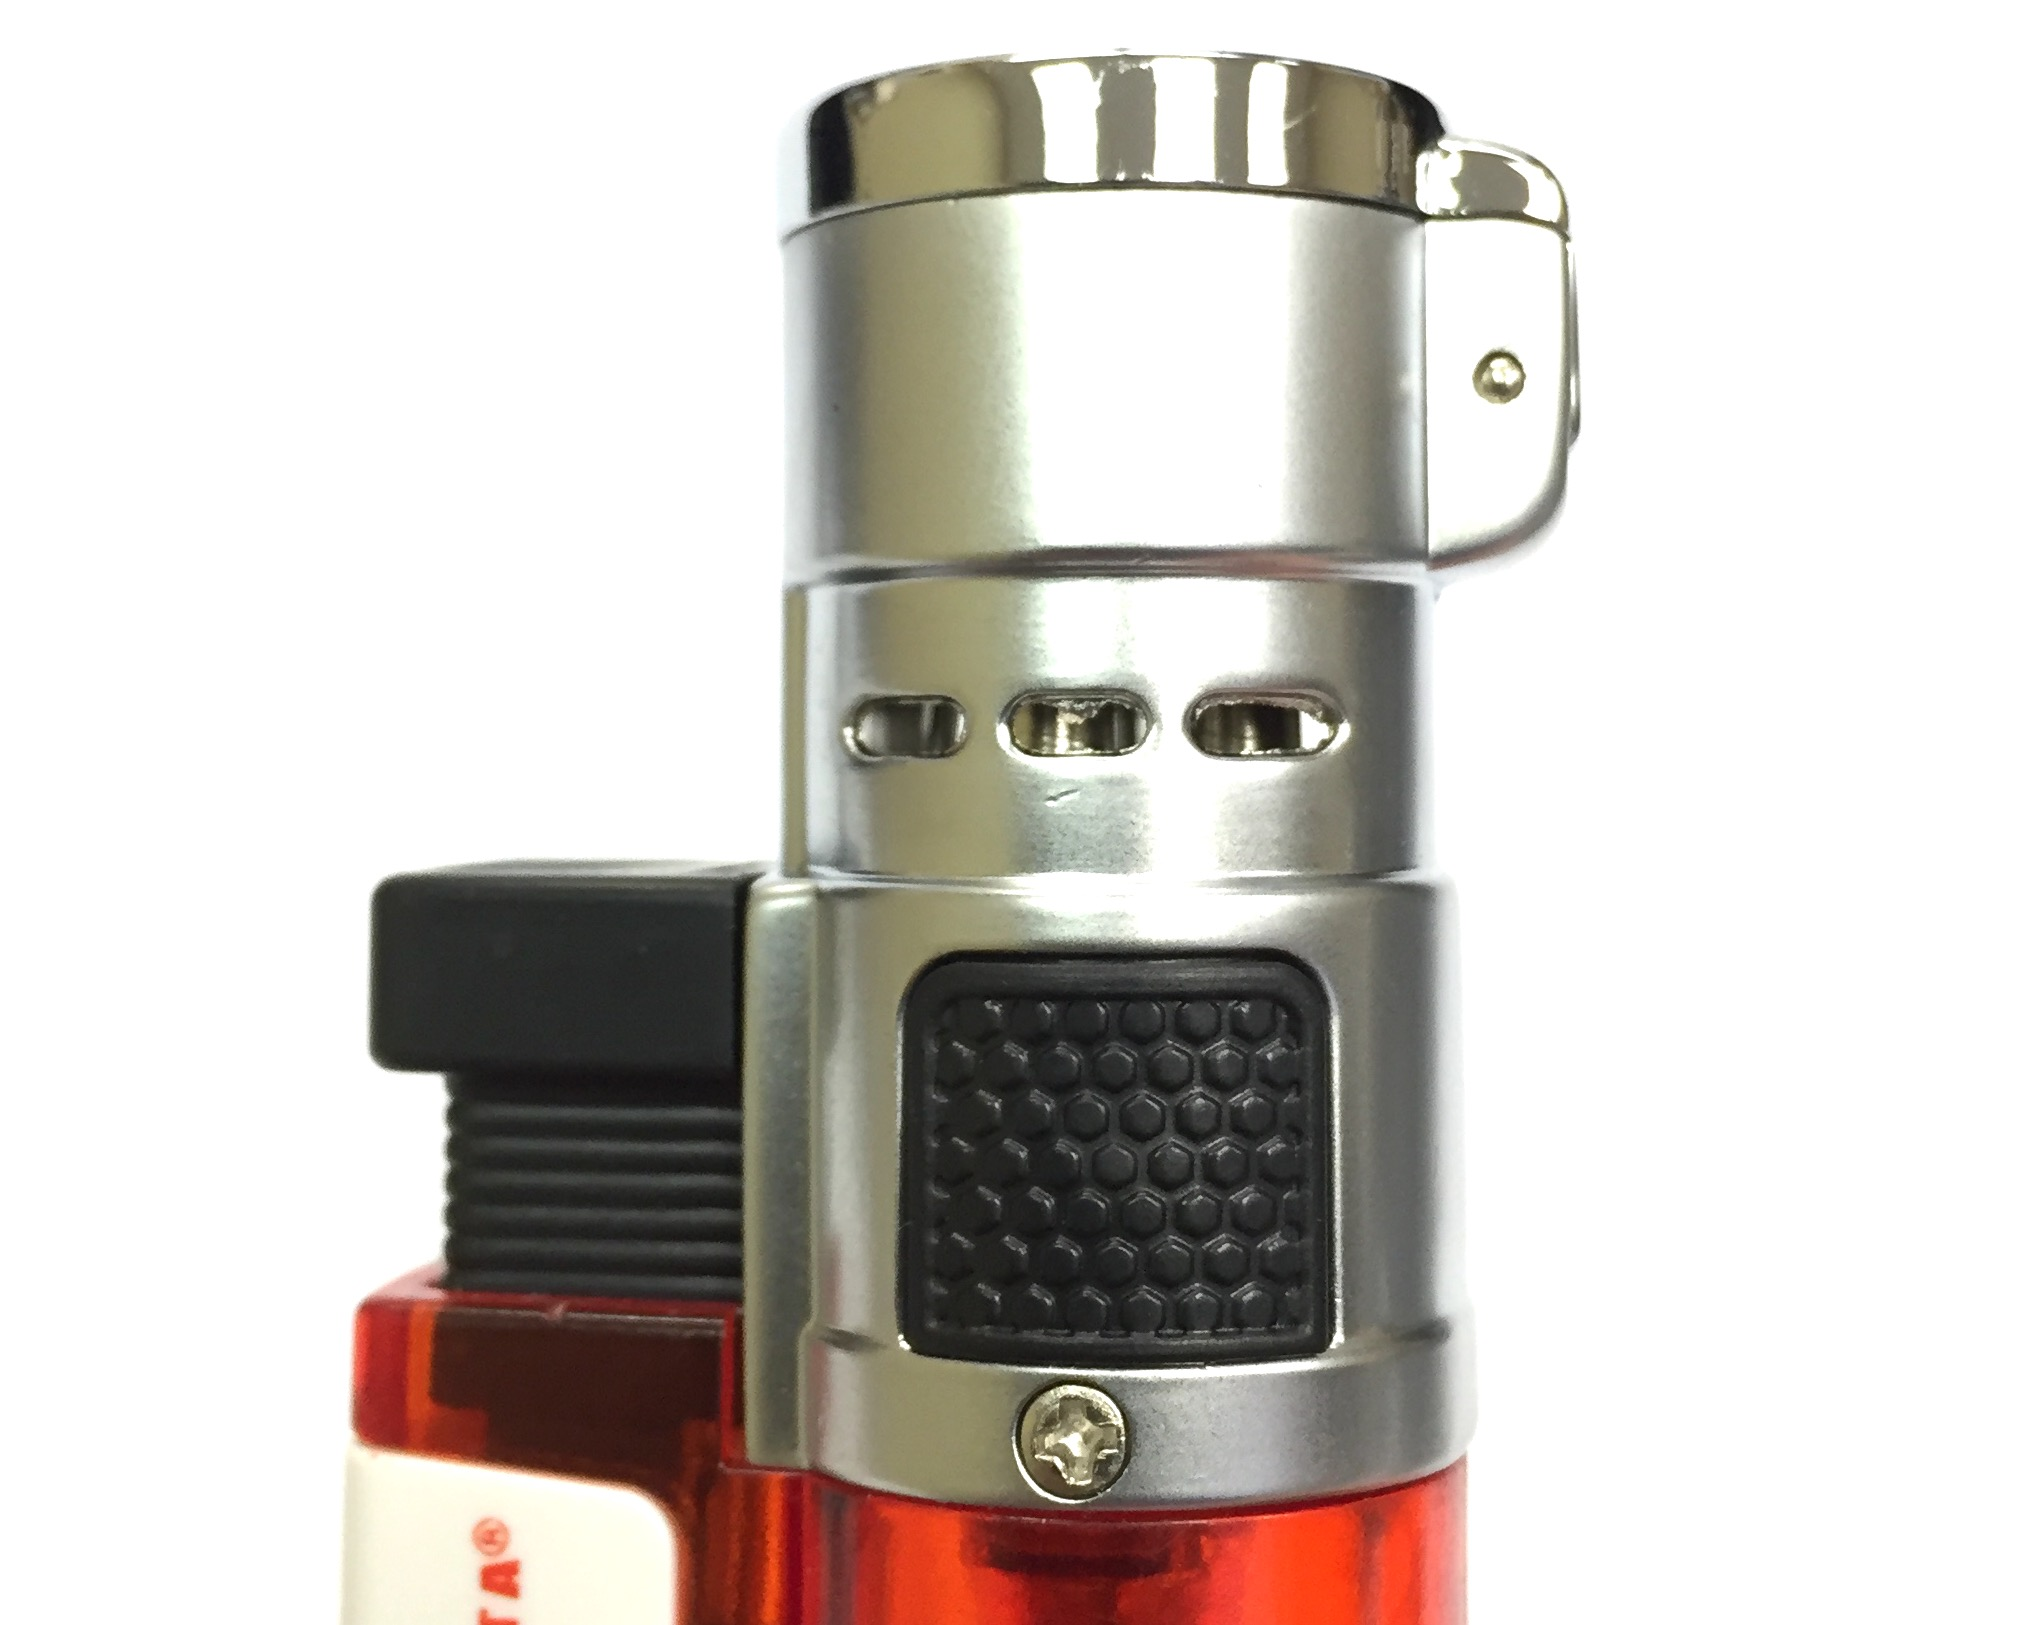 cigar lighter montecristo image